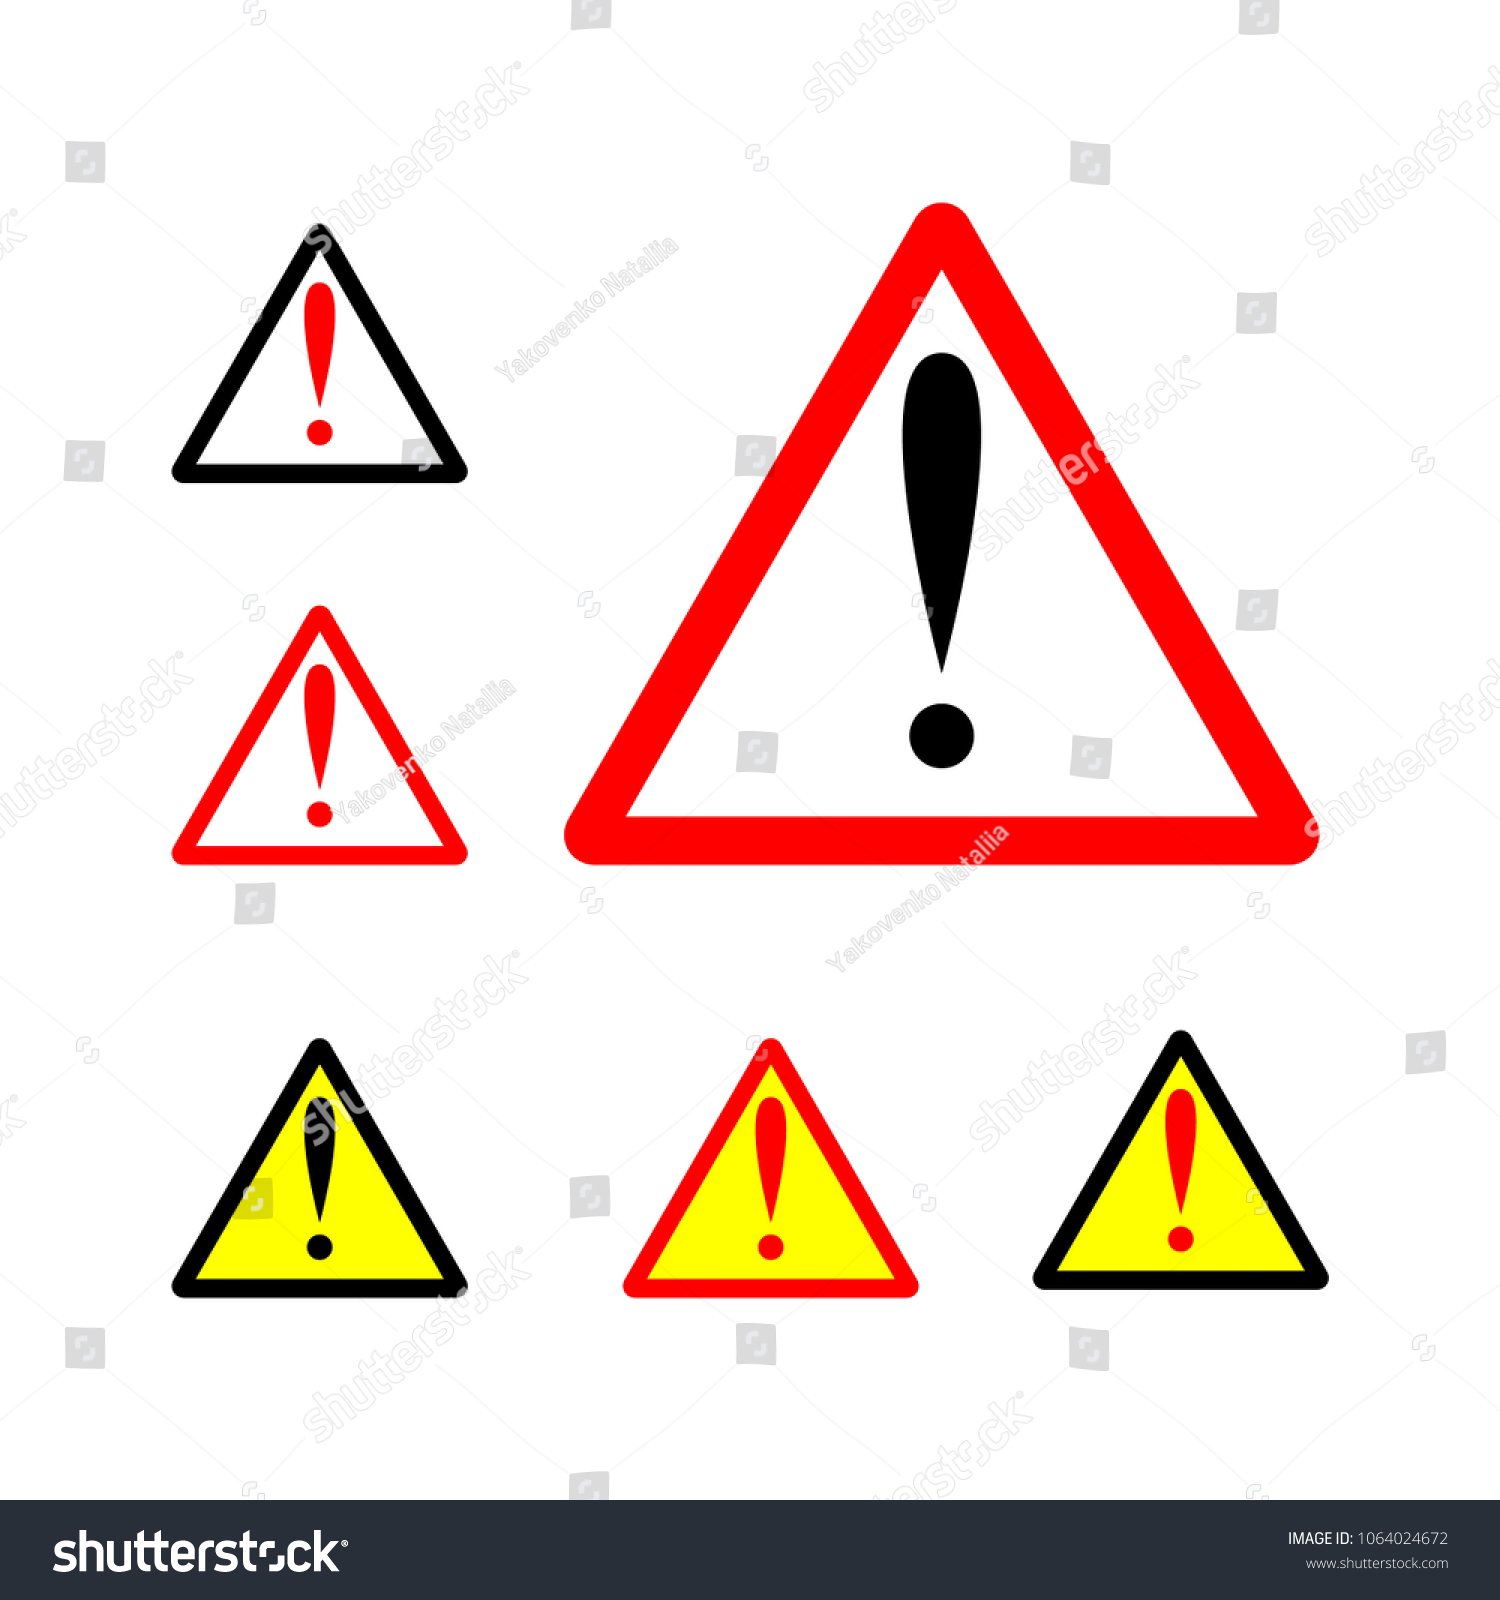 Warning Sign Set Illustration Exclamation Triangle Stock Vector